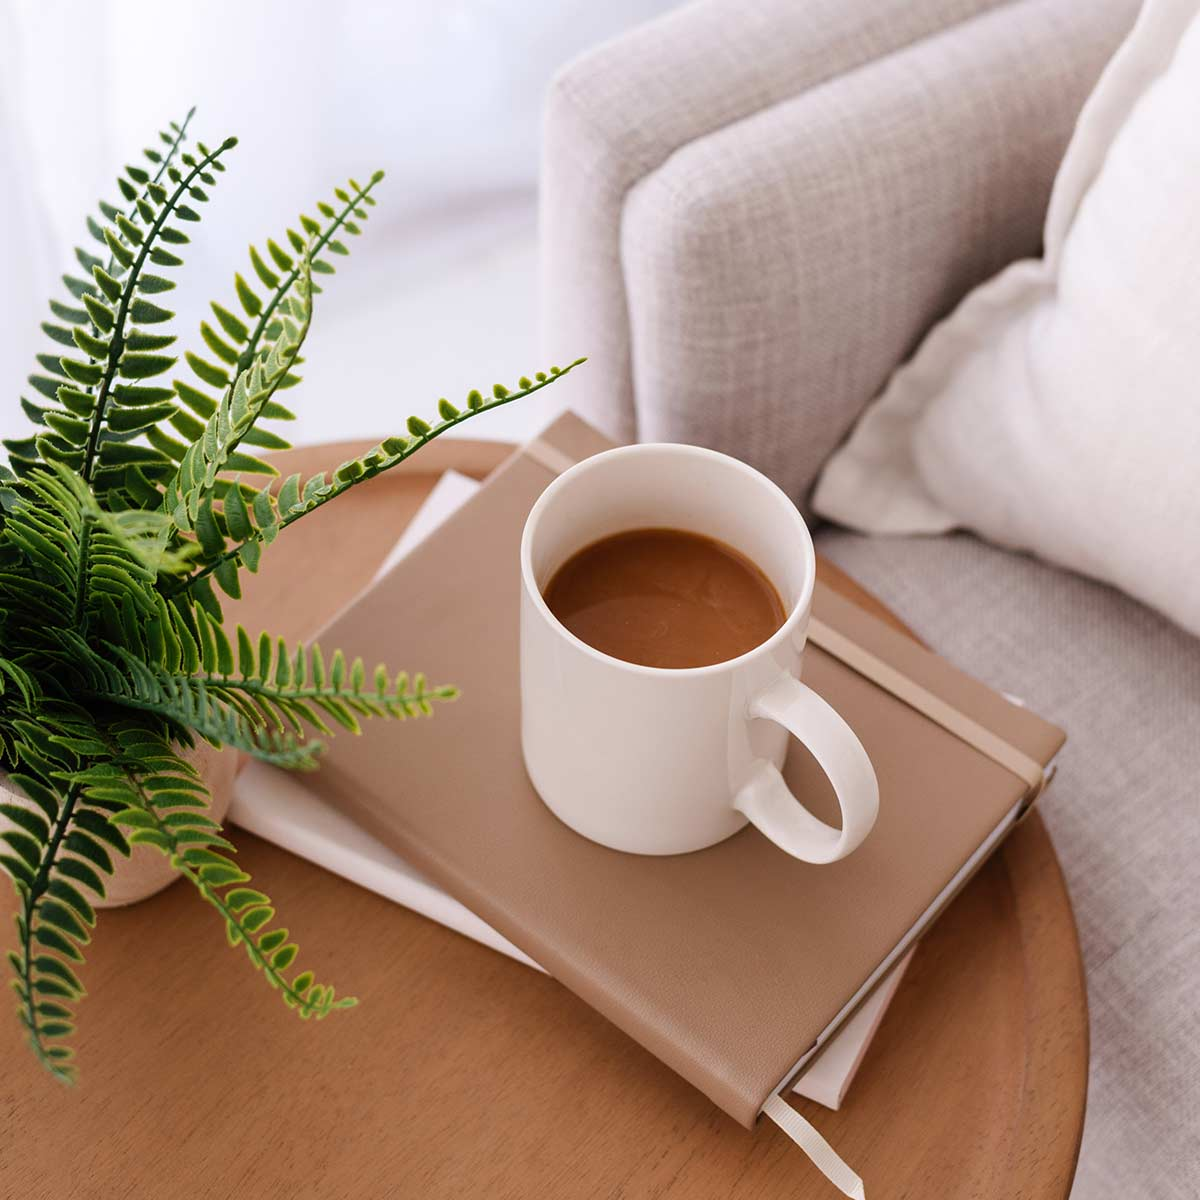 White coffee mug on journal stack sitting on round wood table next to plant in neutral-decor living room.